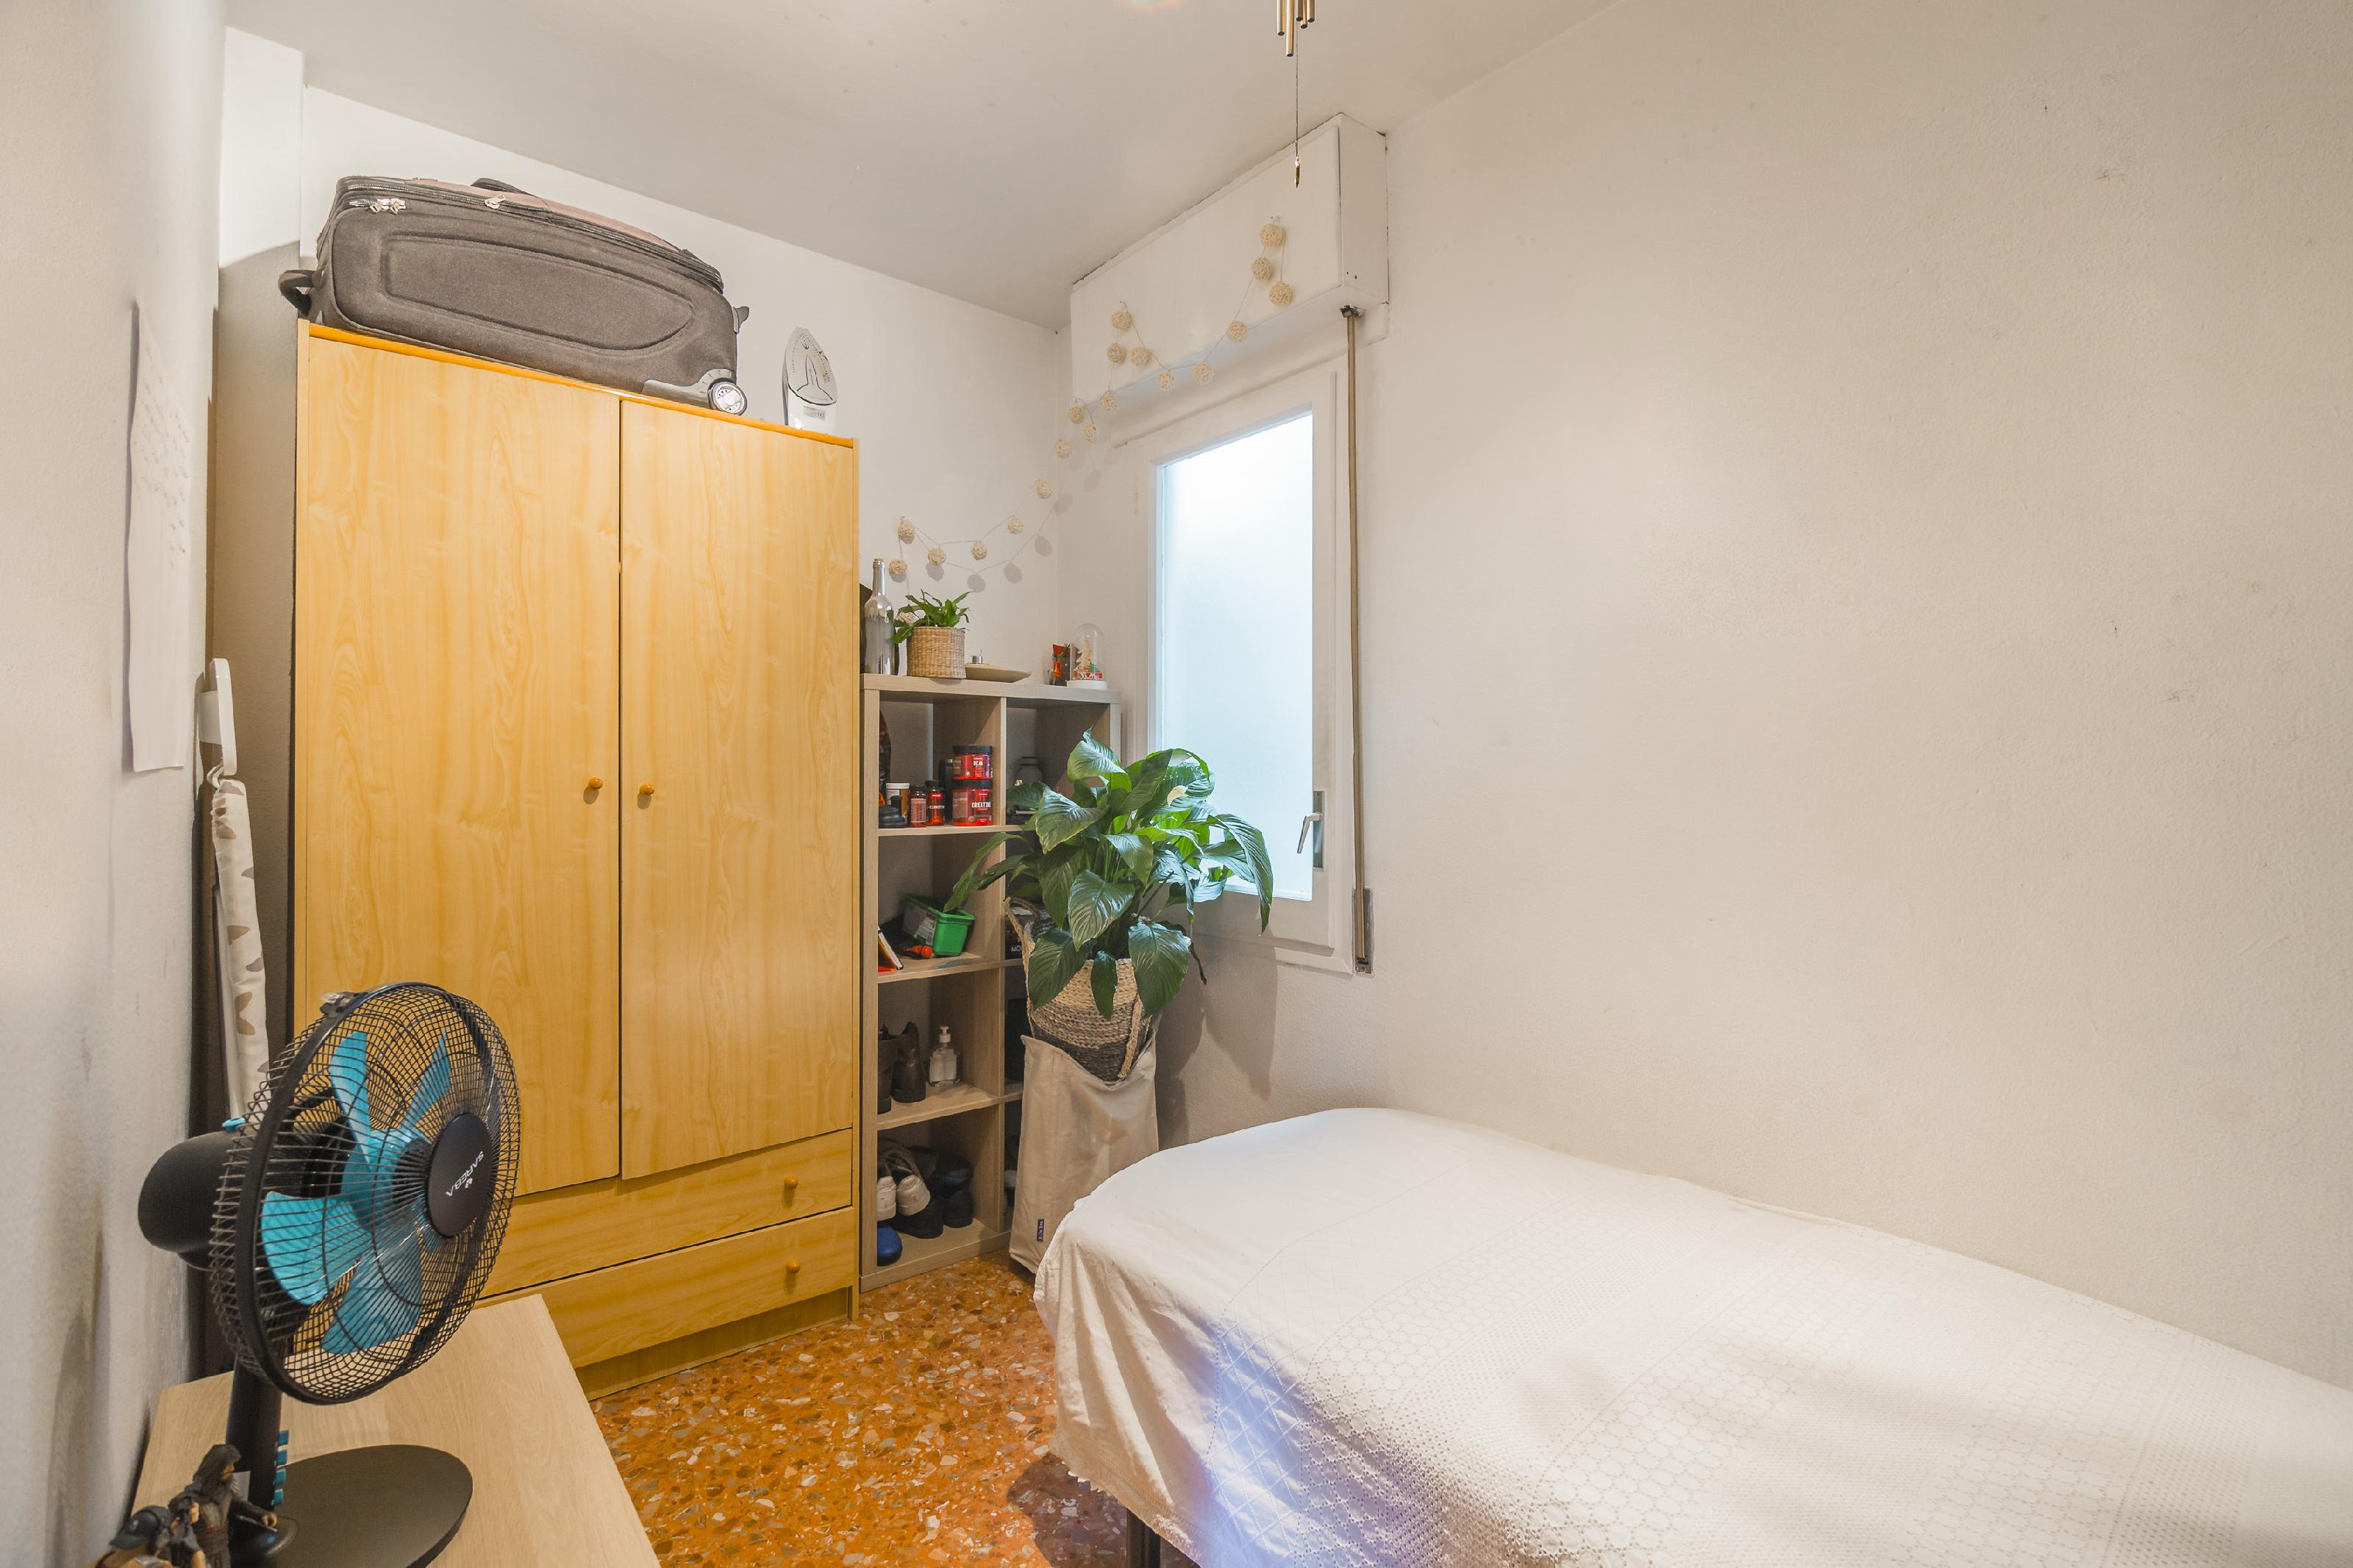 239426 Flat for sale in Les Corts, Les Corts 17